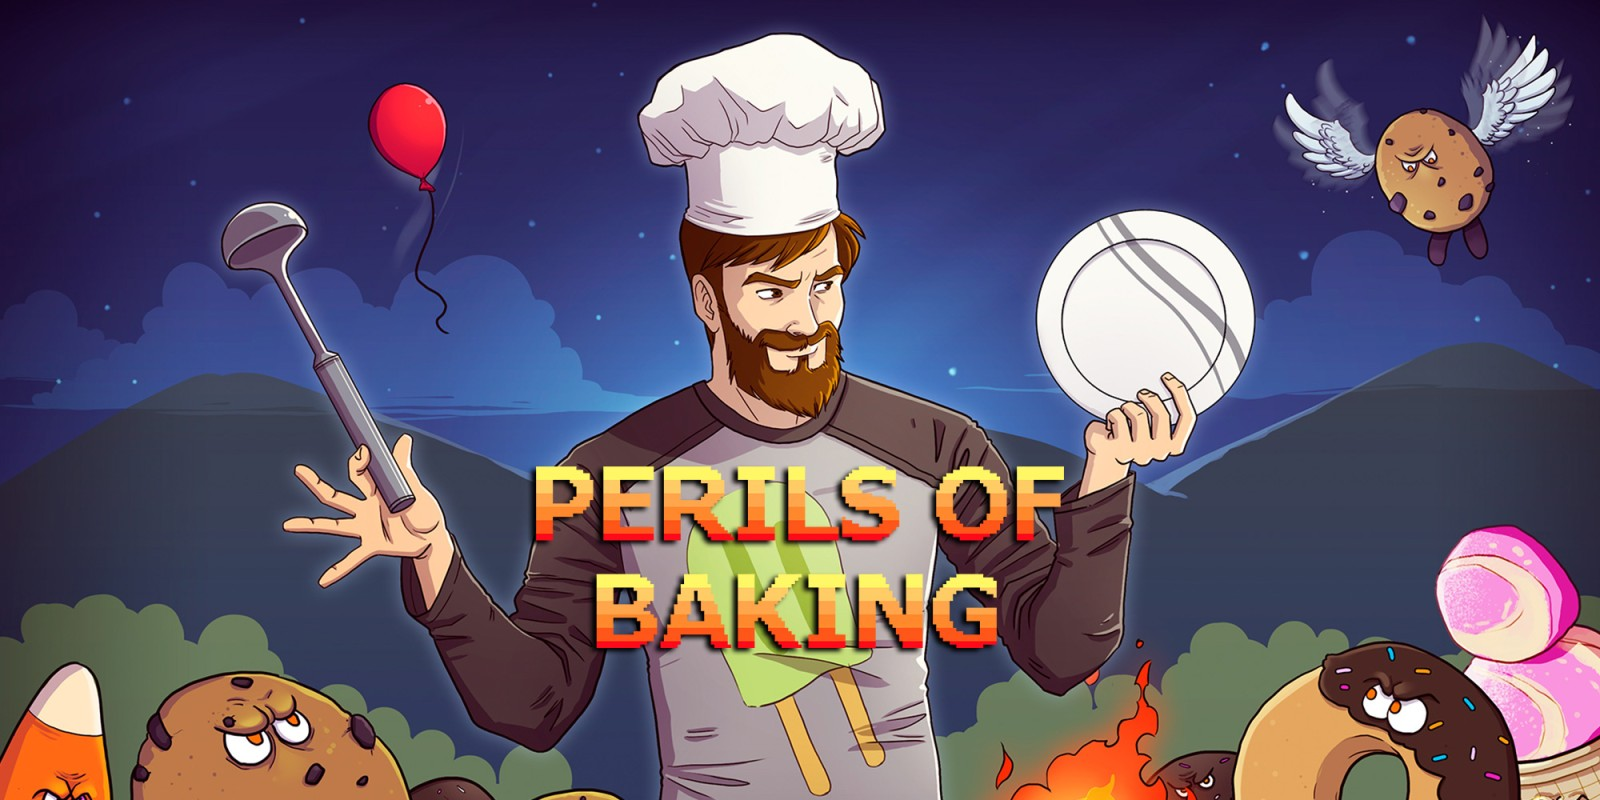 Perils of Baking